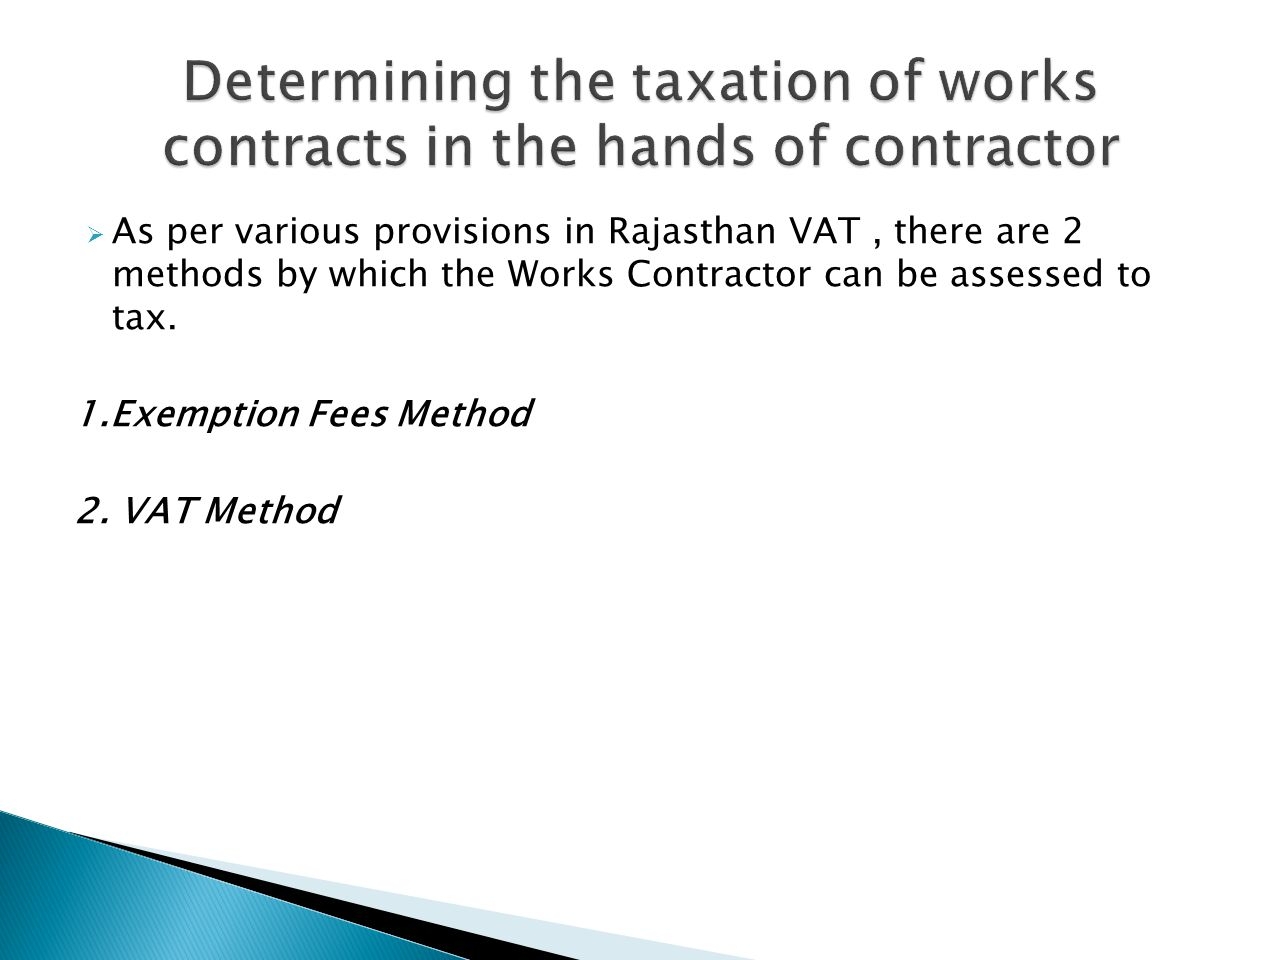 As per various provisions in Rajasthan VAT, there are 2 methods by which the Works Contractor can be assessed to tax. 1.Exemption Fees Method 2. VAT M